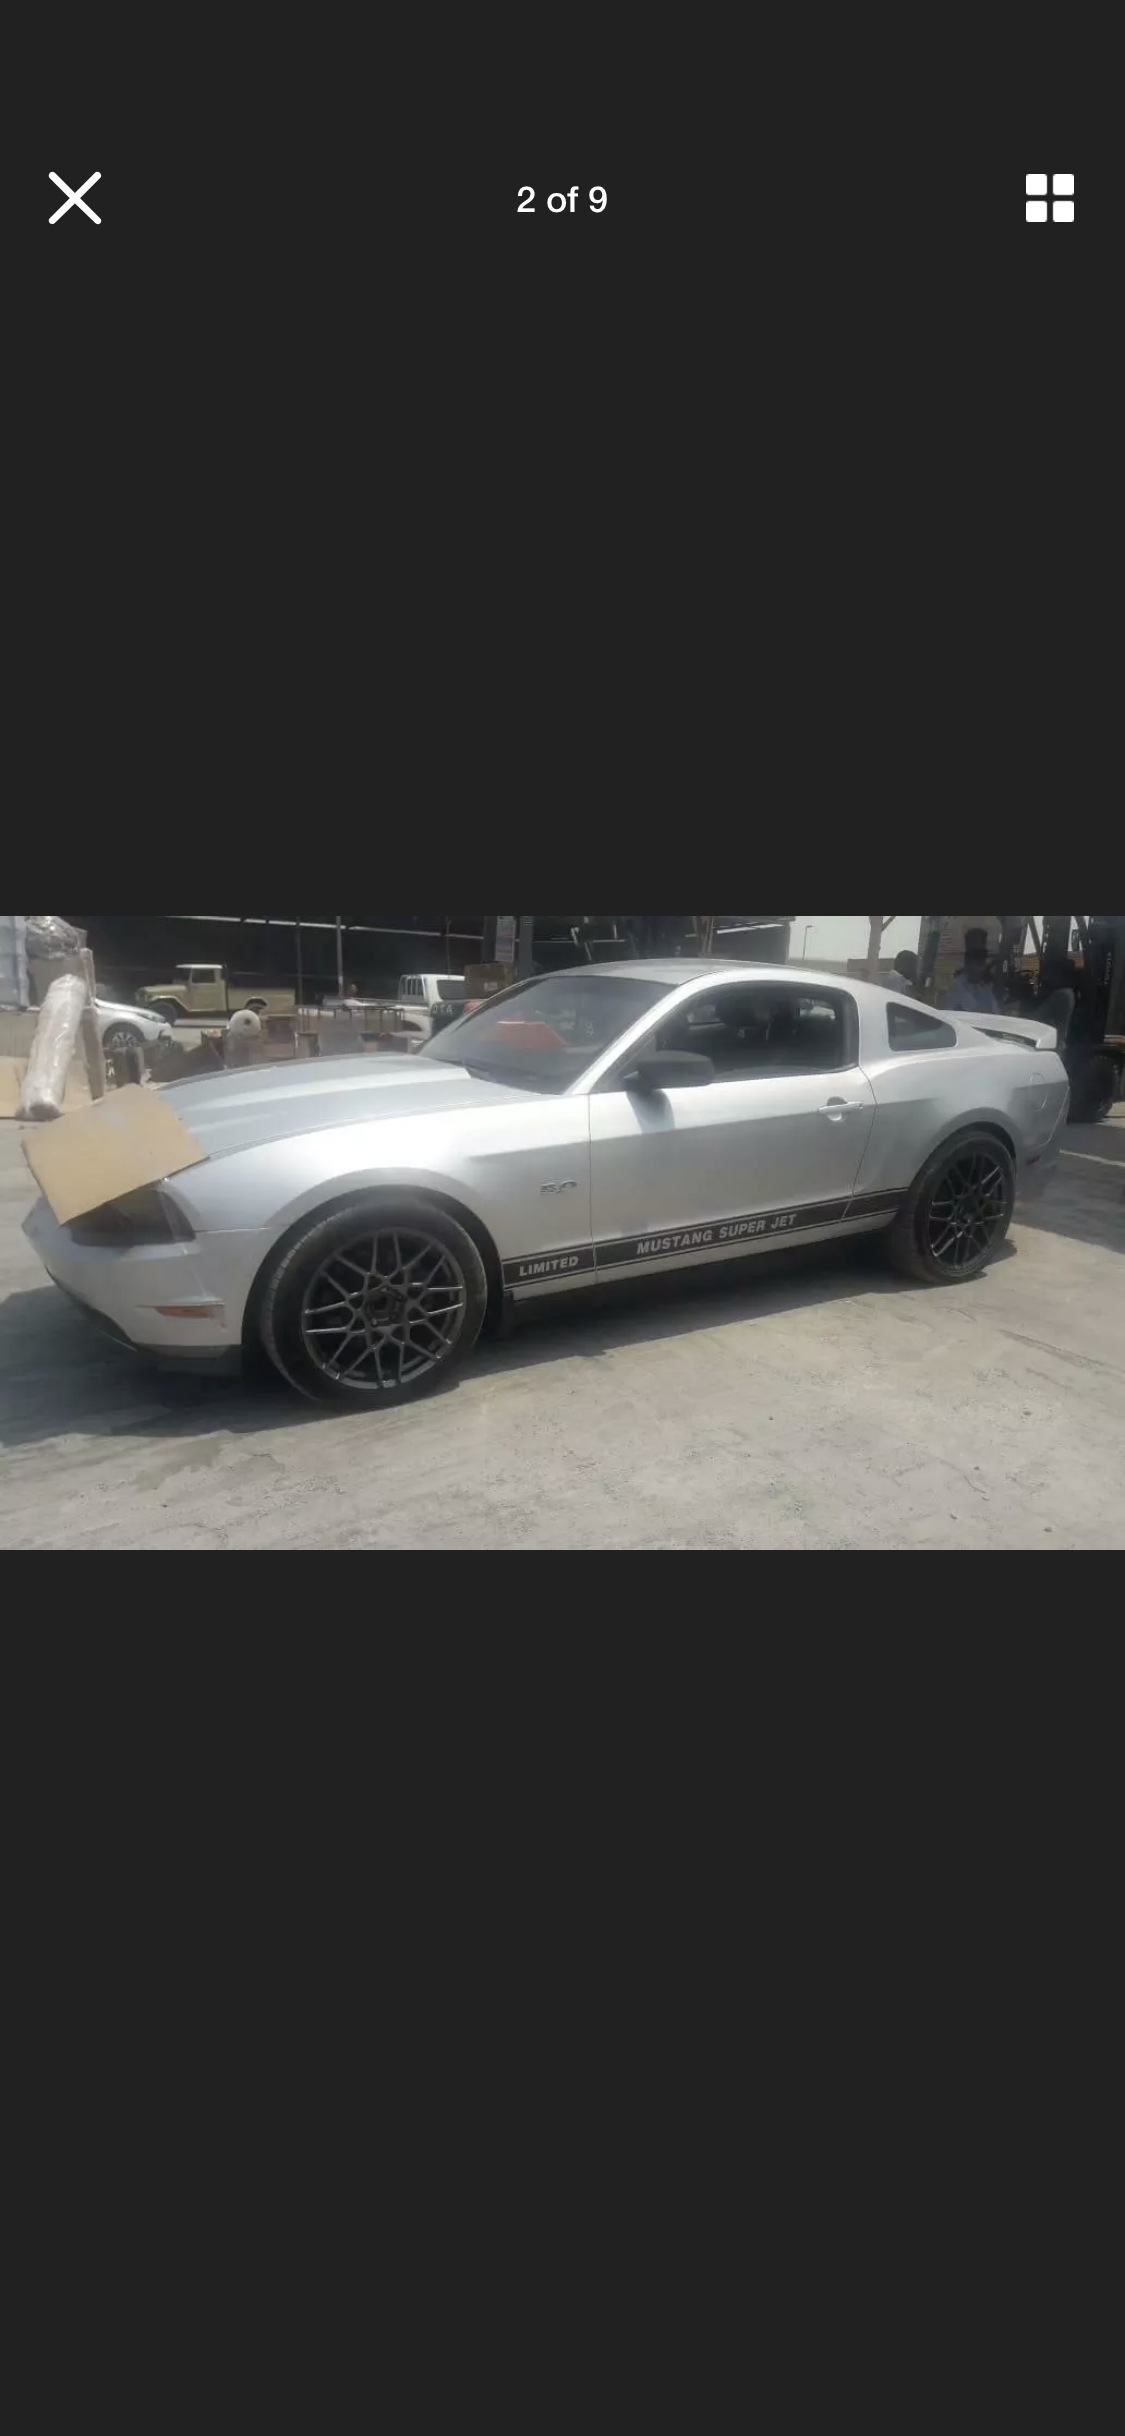 2012 Ford mustang 5.0 v8 gt auto lhd fresh import For Sale (picture 4 of 5)